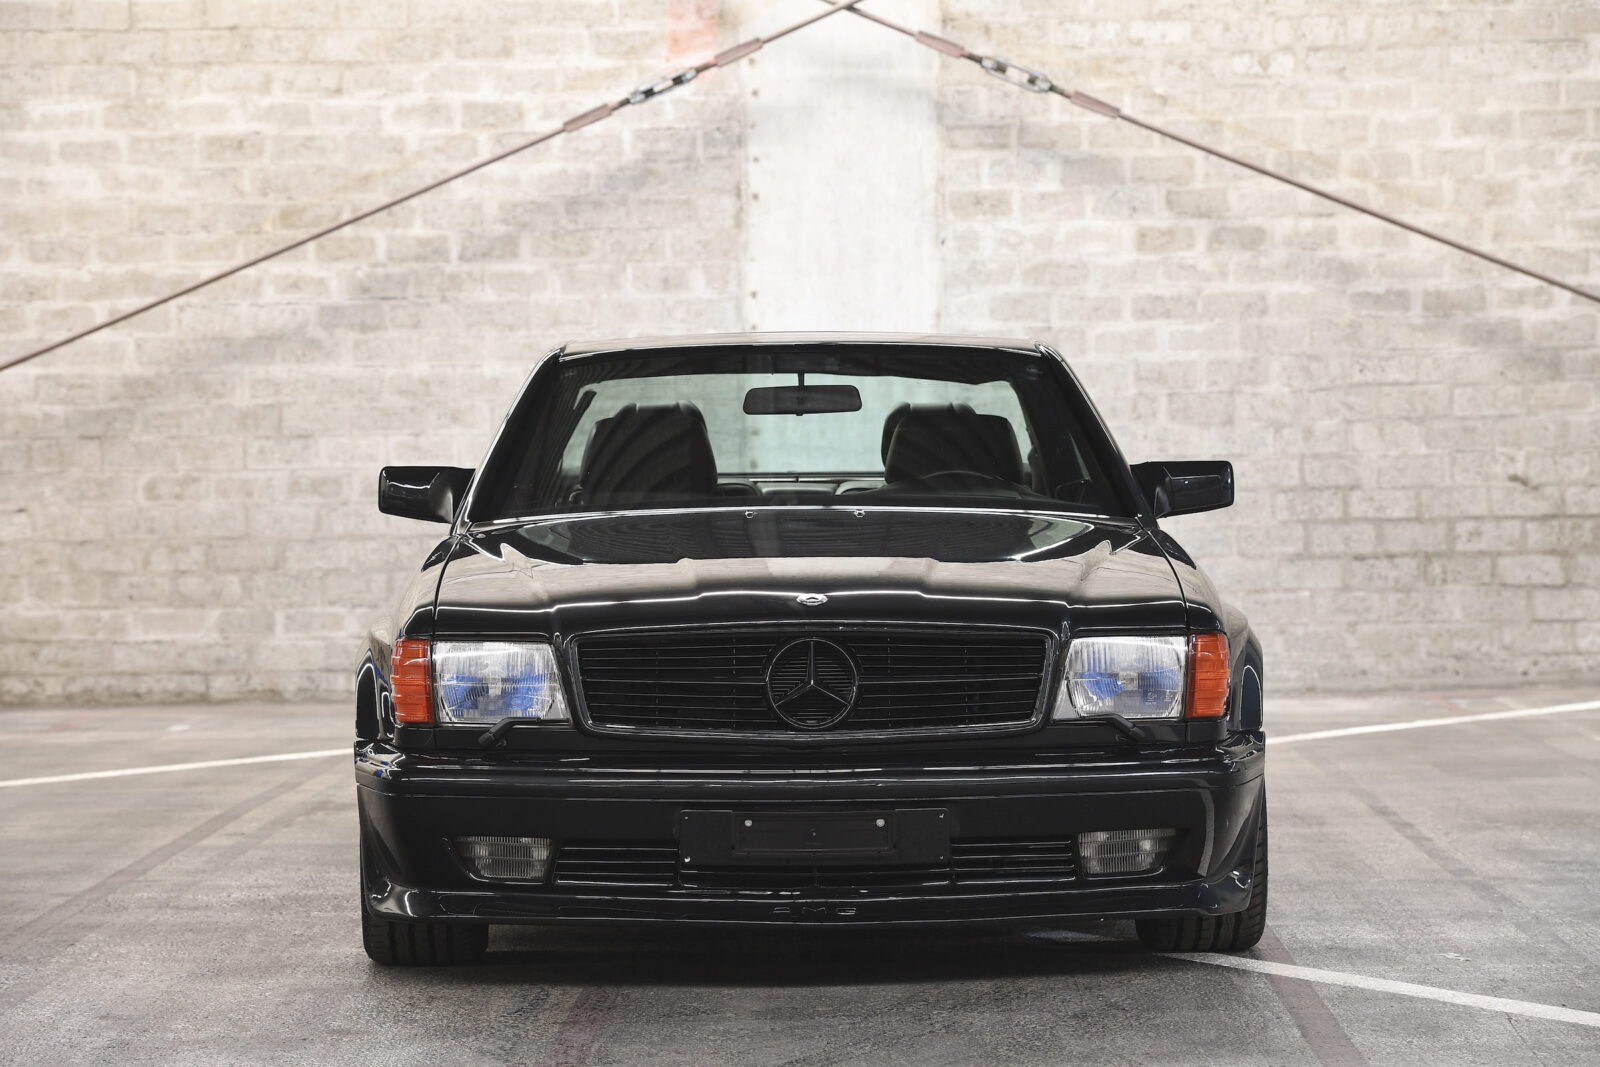 dac58515db Mercedes-Benz 560 SEC AMG 6.0 Wide-Body - 385 HP German GT